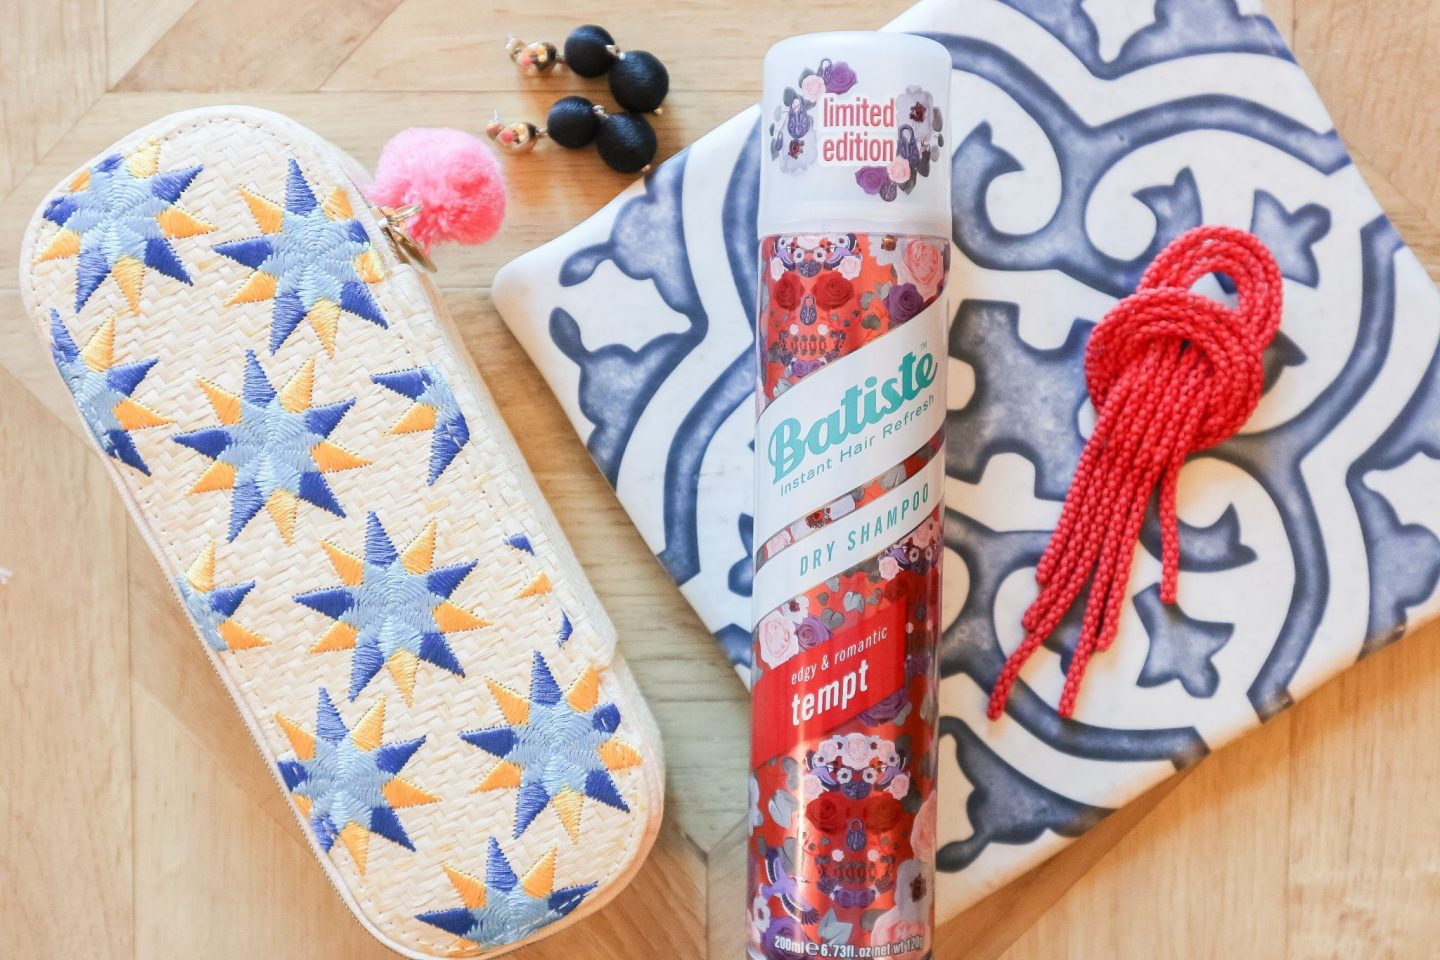 Batiste Dry Shampoo in Limited Edition Tempt review